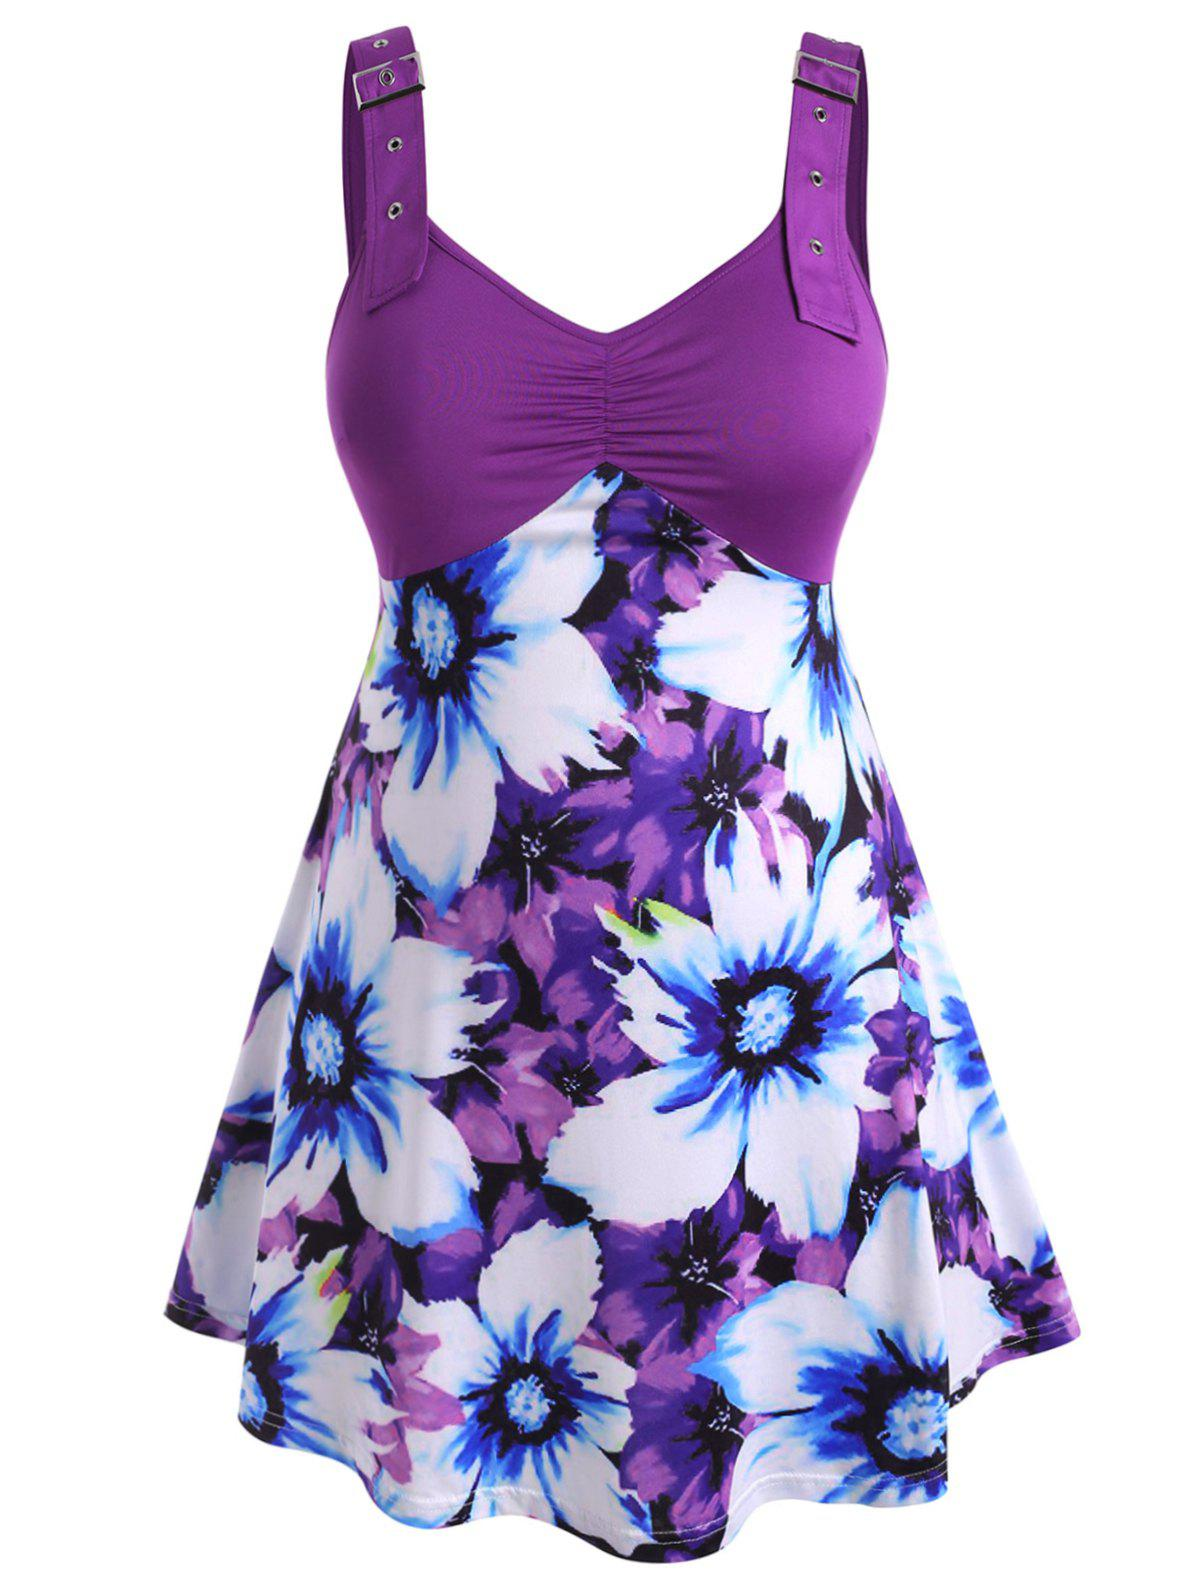 Floral Buckle Straps Gathered Front Plus Size Tank Top - PURPLE 4X